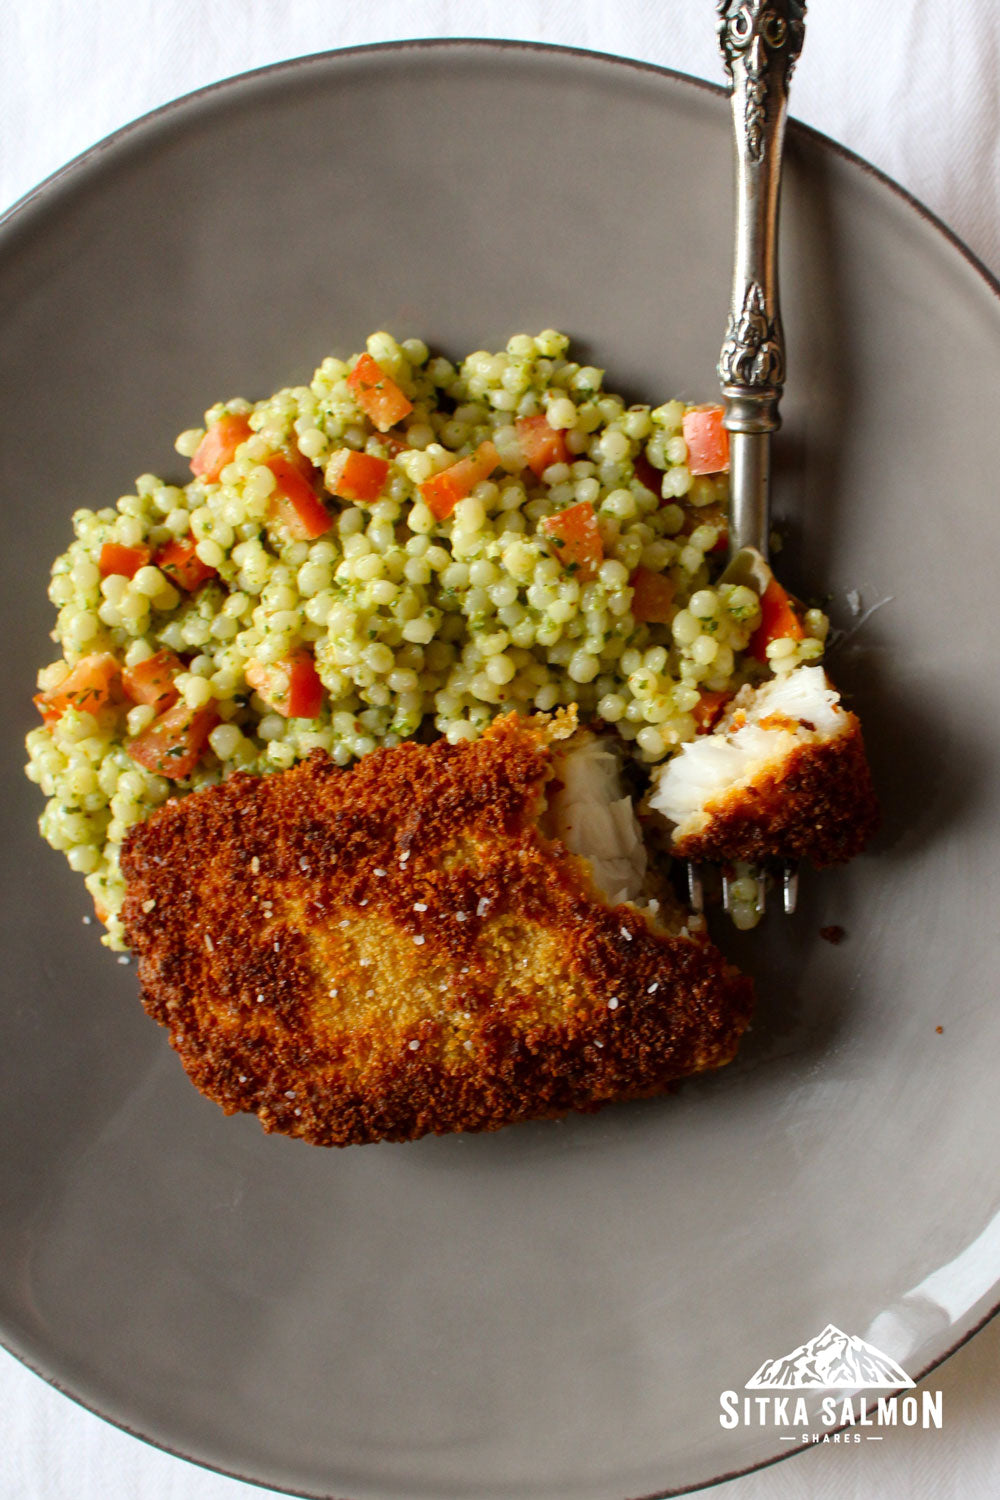 Panko-Crusted Rockfish with Israeli Couscous Salad Recipe | Sitka Salmon Shares